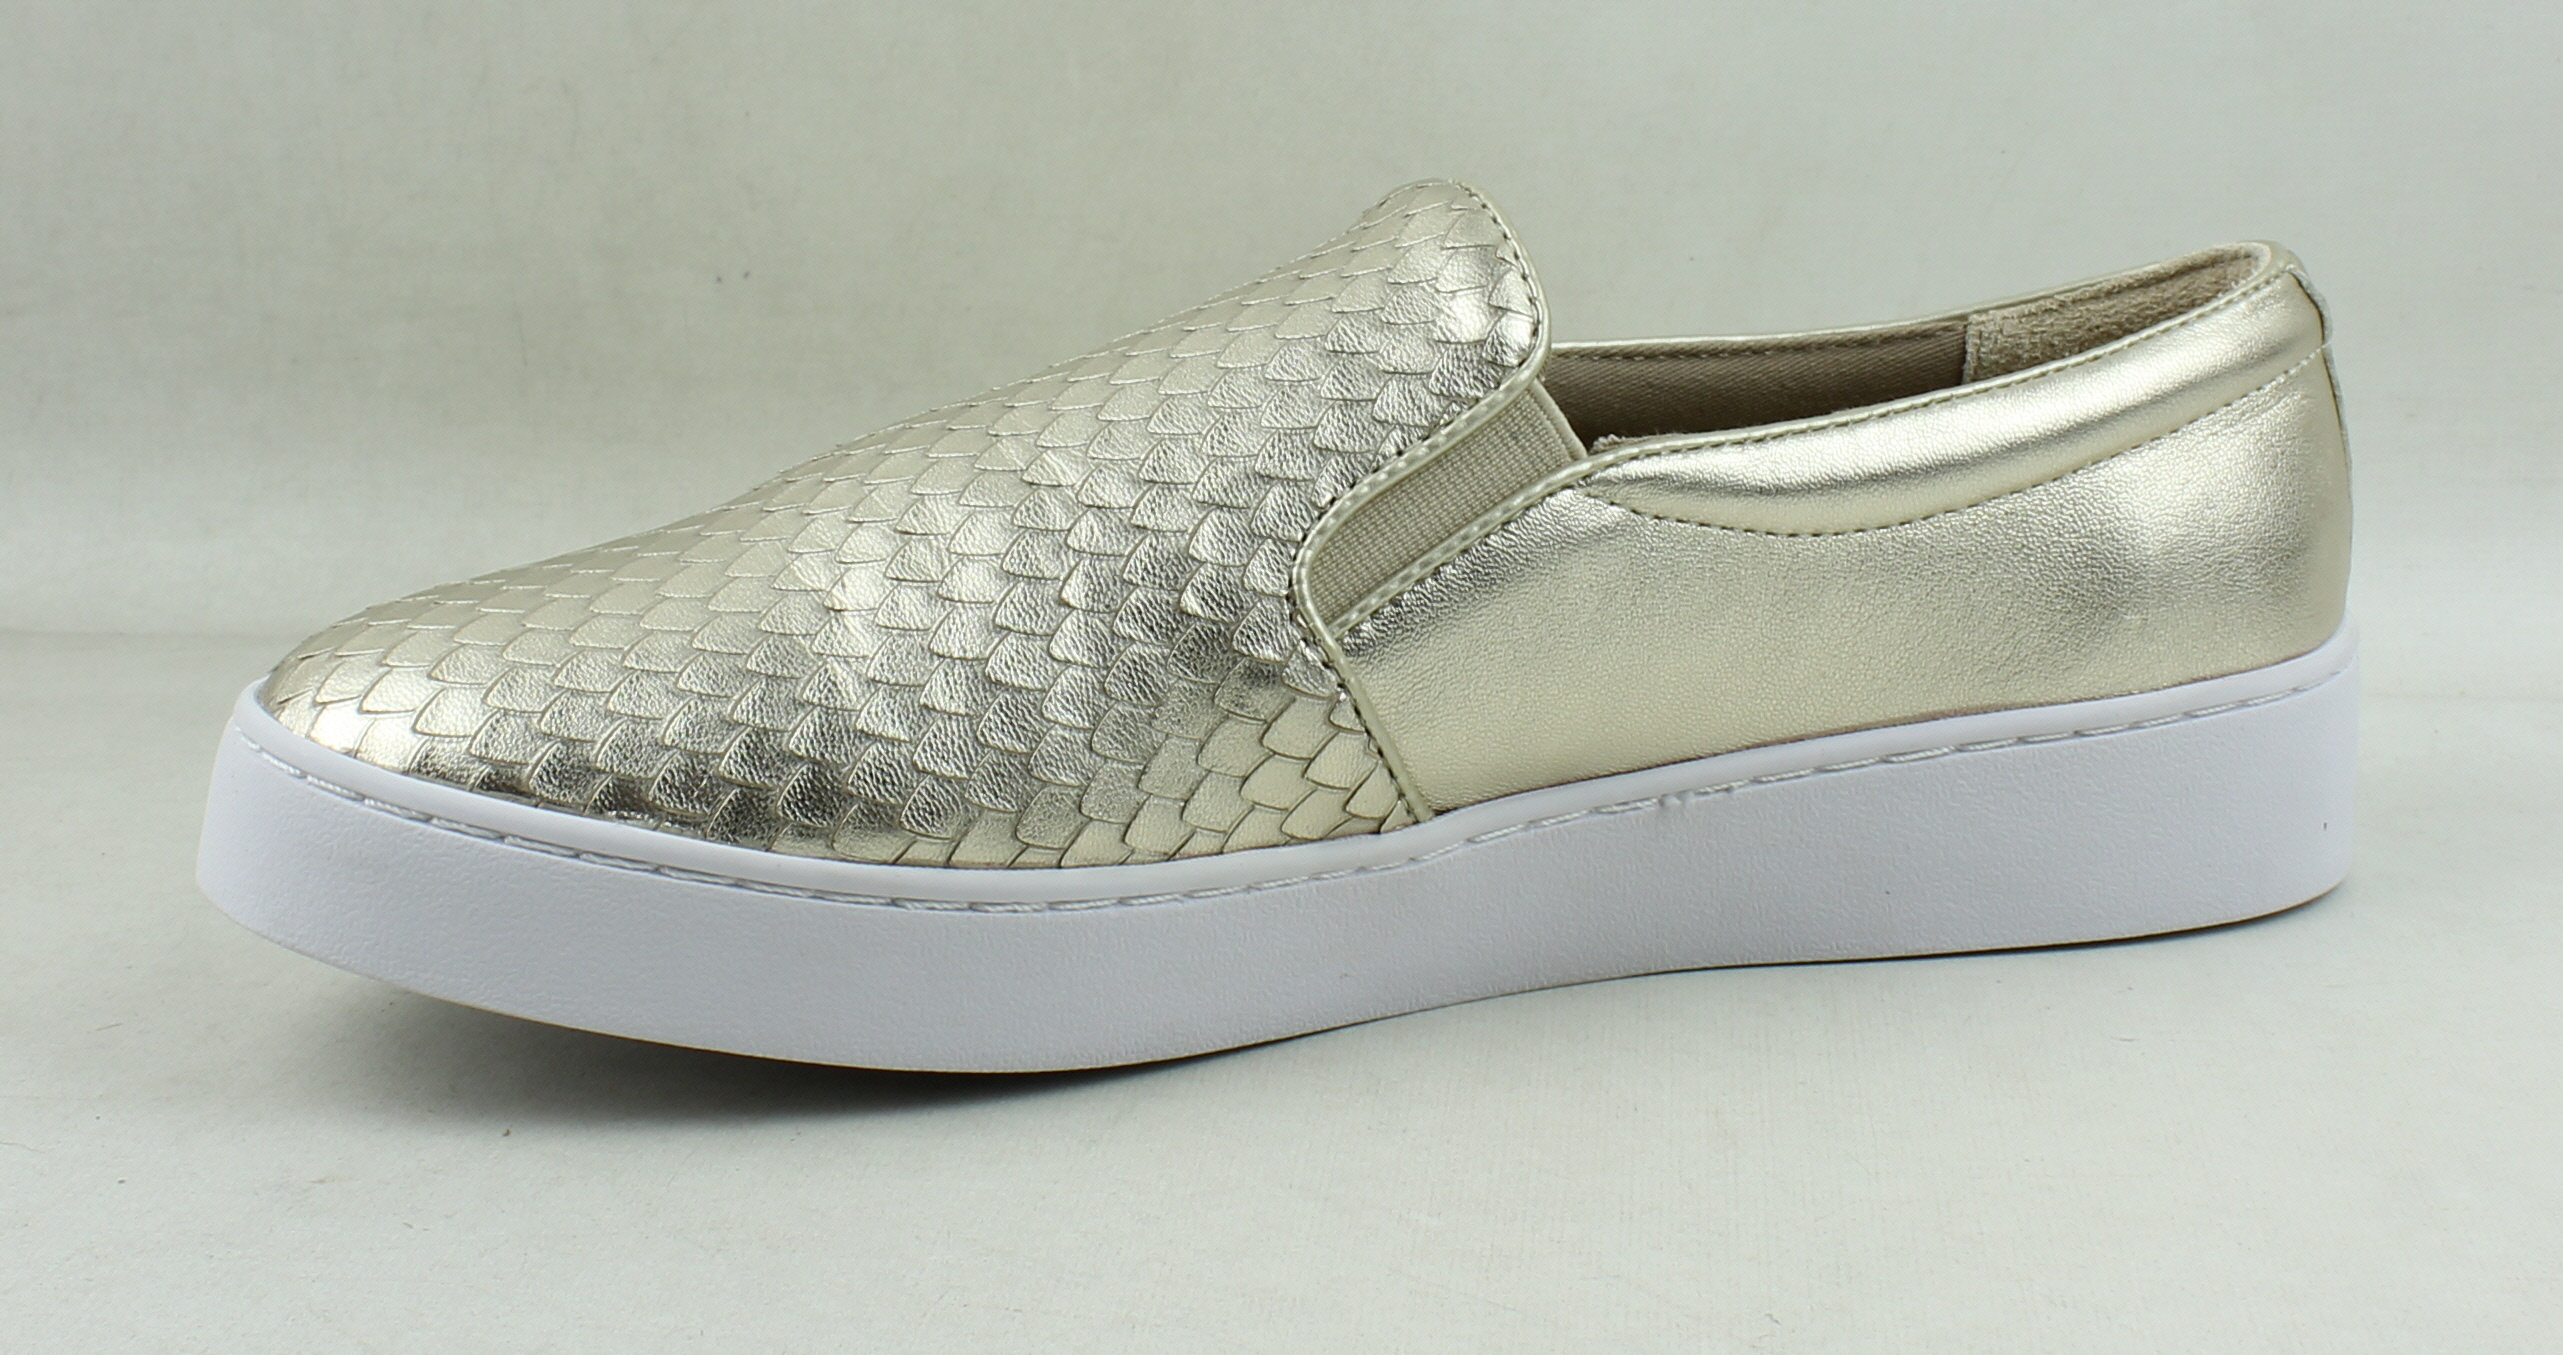 Vionic-Womens-Splendid-Midi-Leather-Comfort-Casual-Flats thumbnail 11